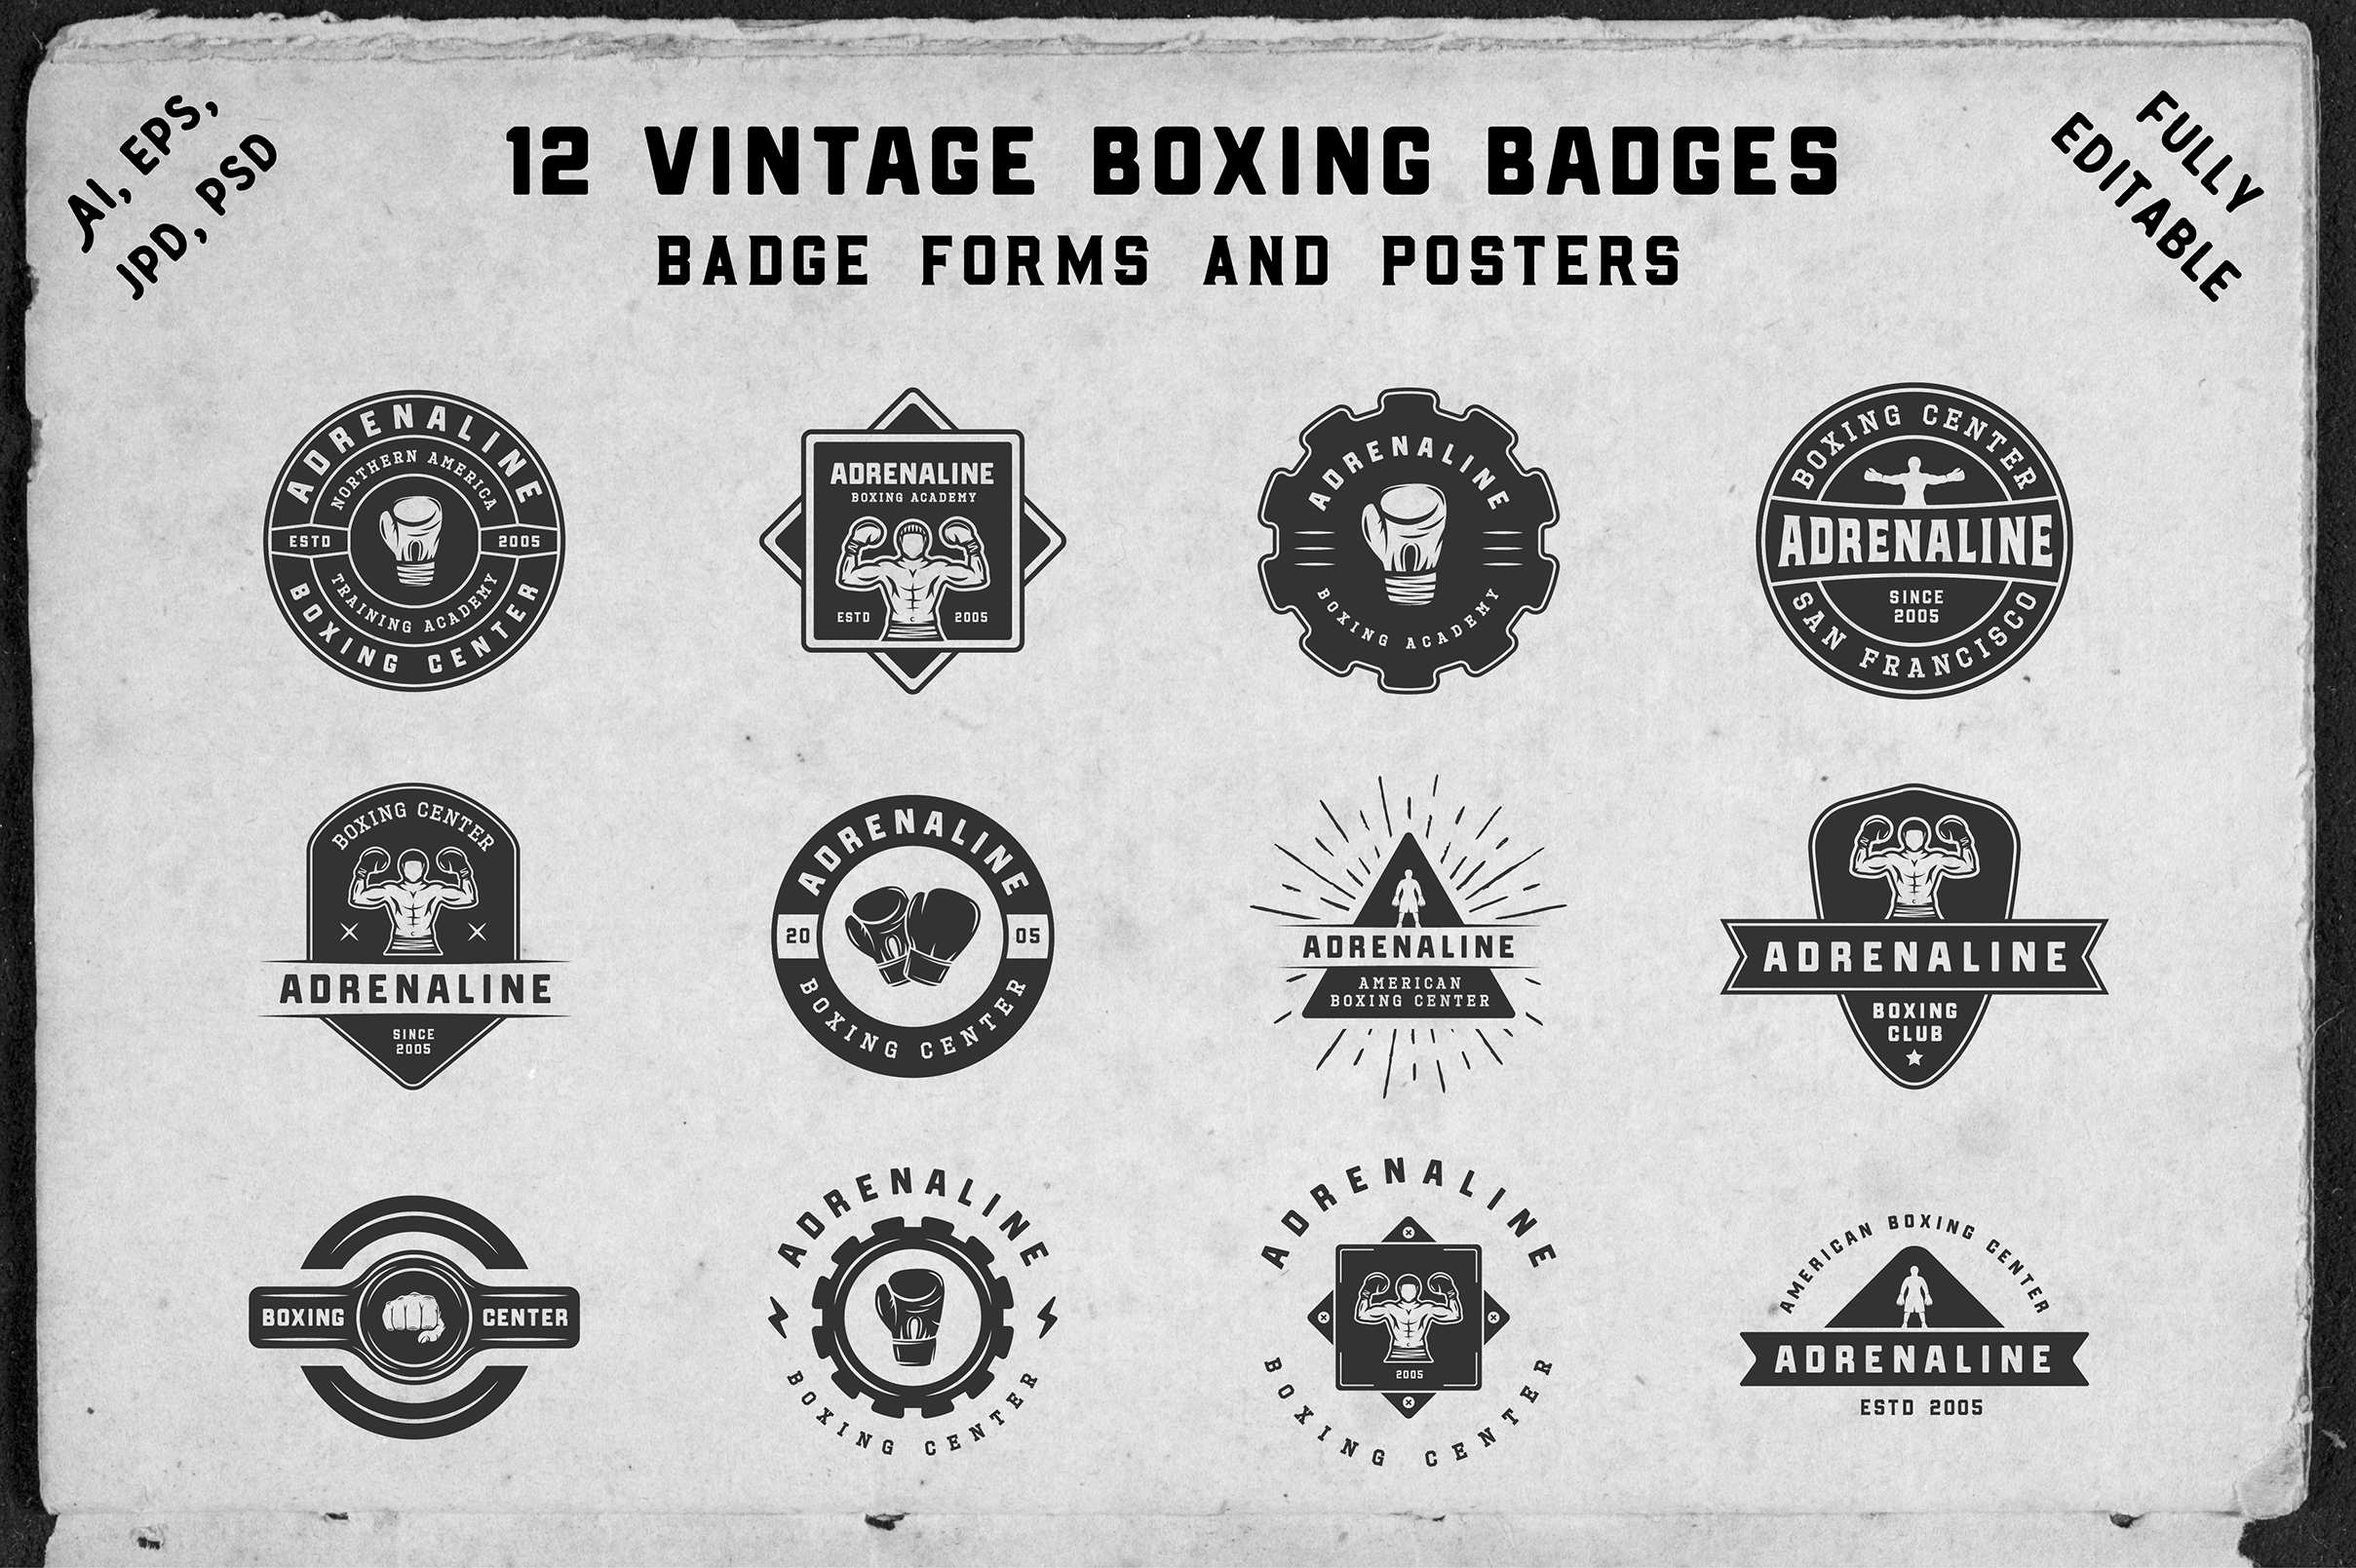 12 vintage boxing badges and forms example image 1